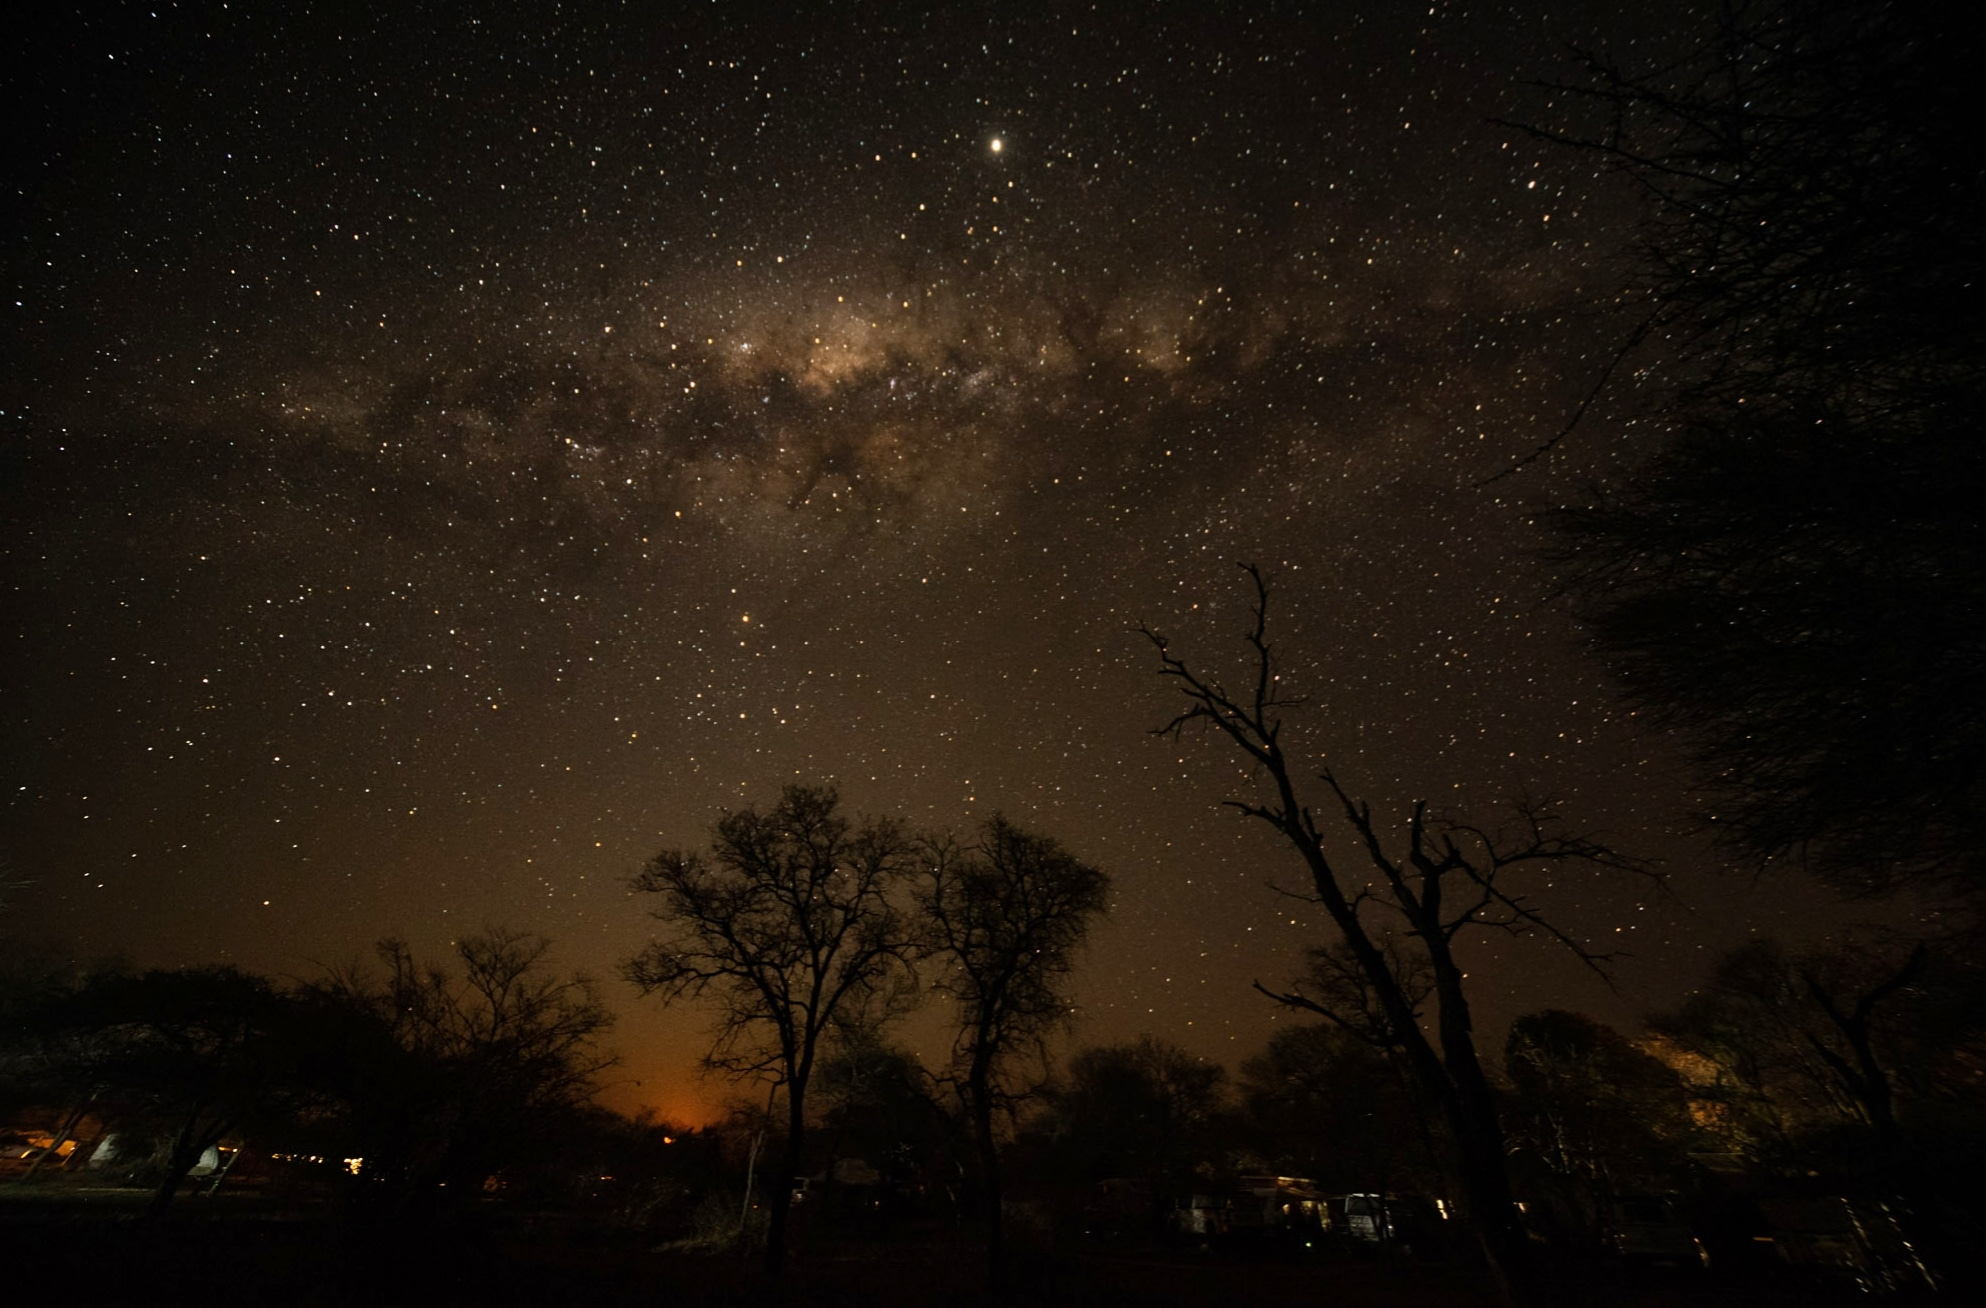 Moonset on a starry night in the Kruger!